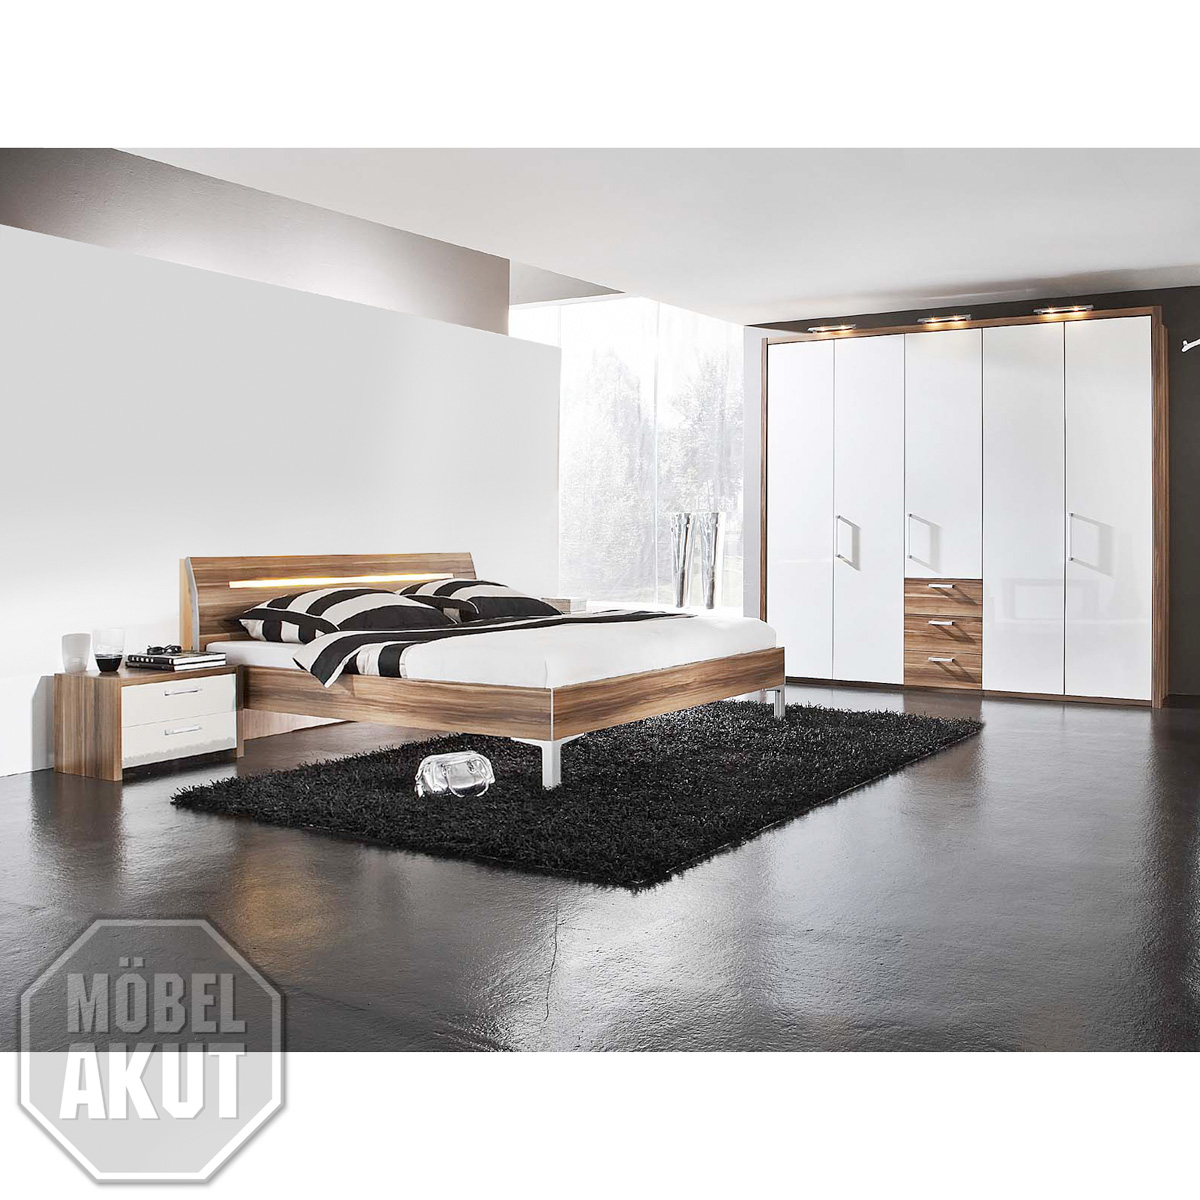 nussbaum schlafzimmer raum und m beldesign inspiration. Black Bedroom Furniture Sets. Home Design Ideas